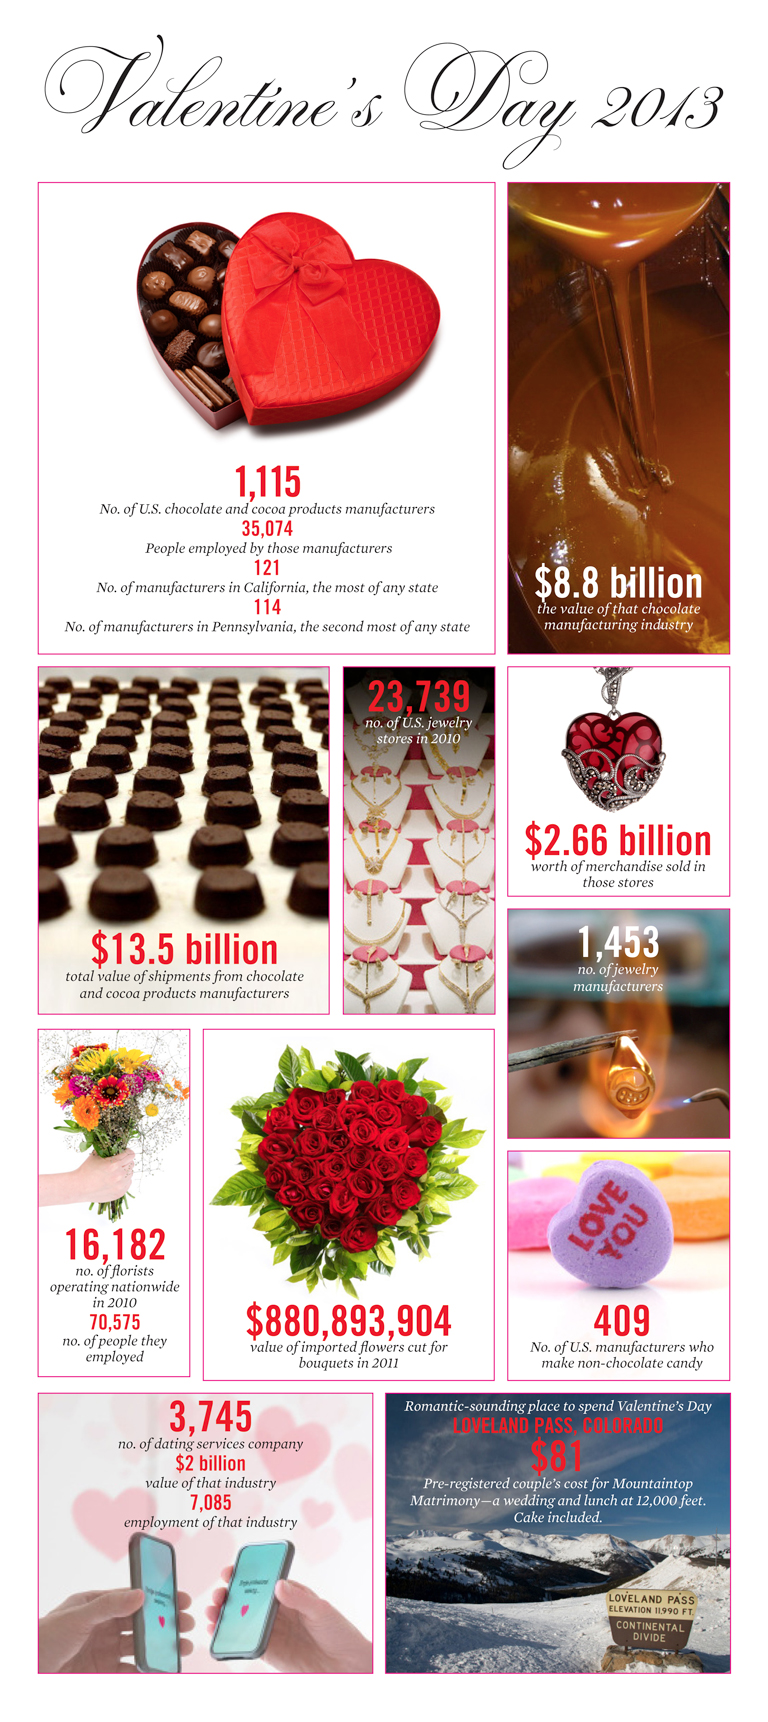 0213_valentines-day-2013-graphic_768x172210